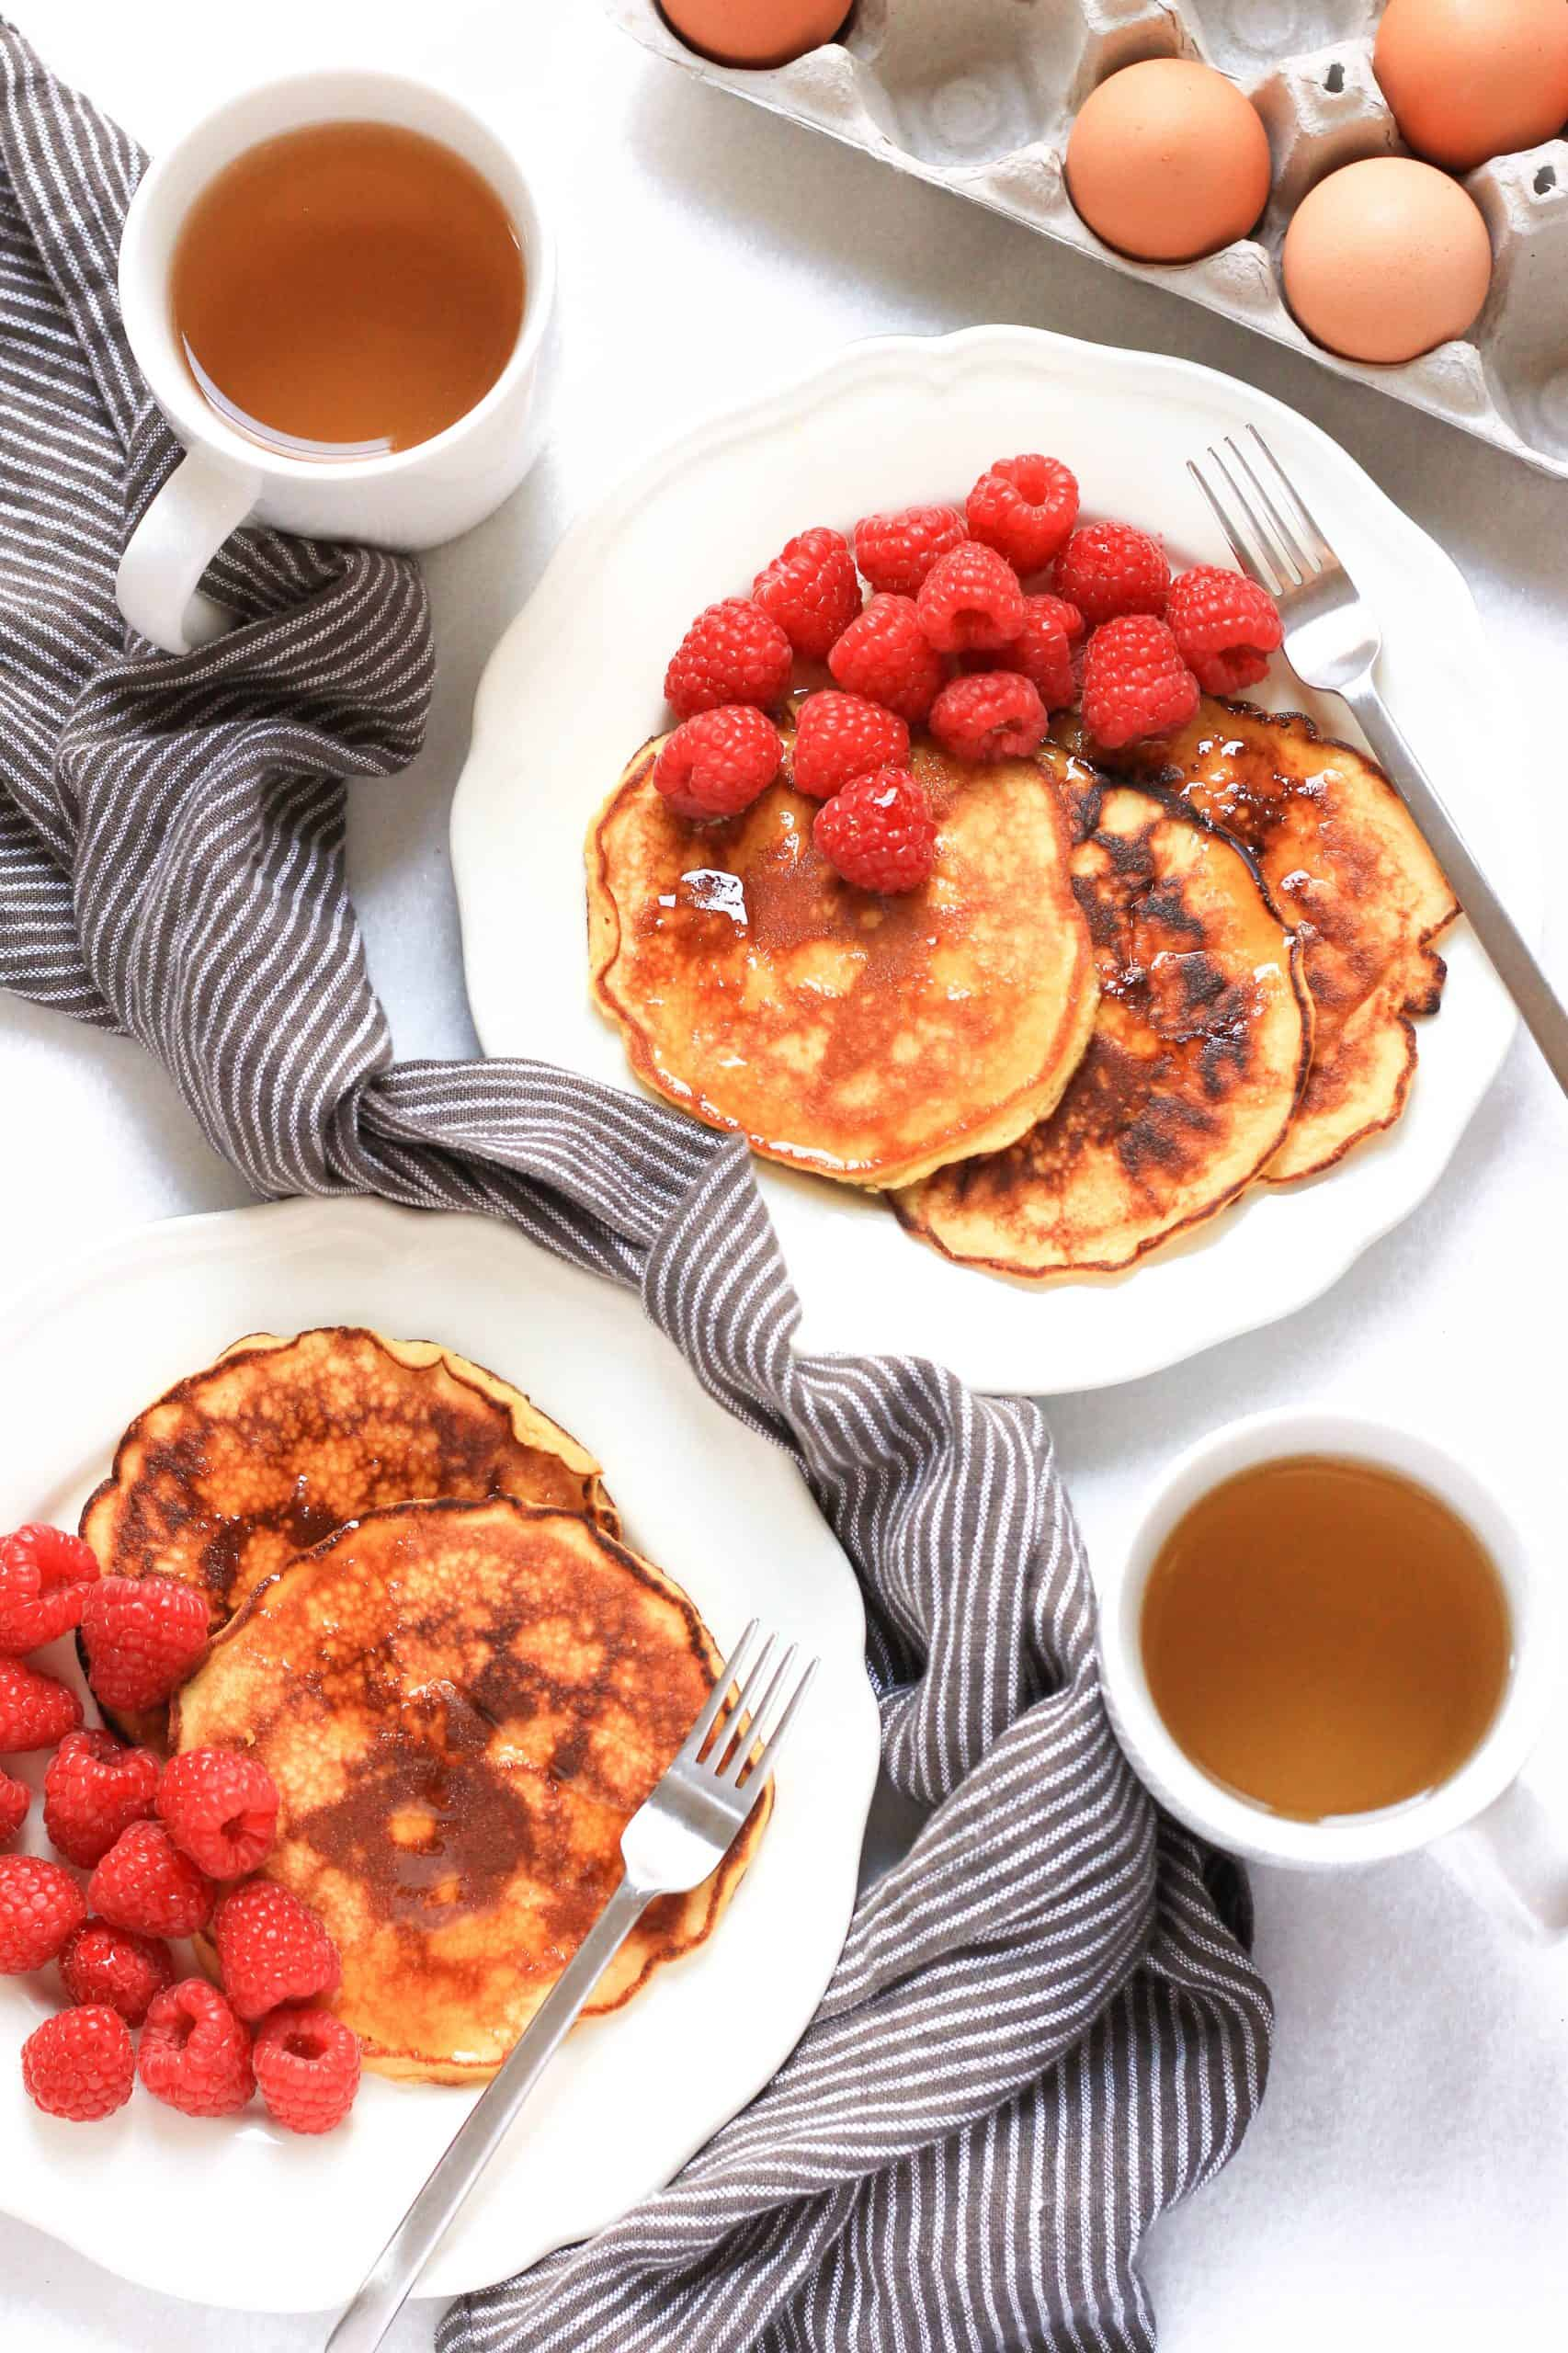 Plates of pancakes and rasberries on a marble board.